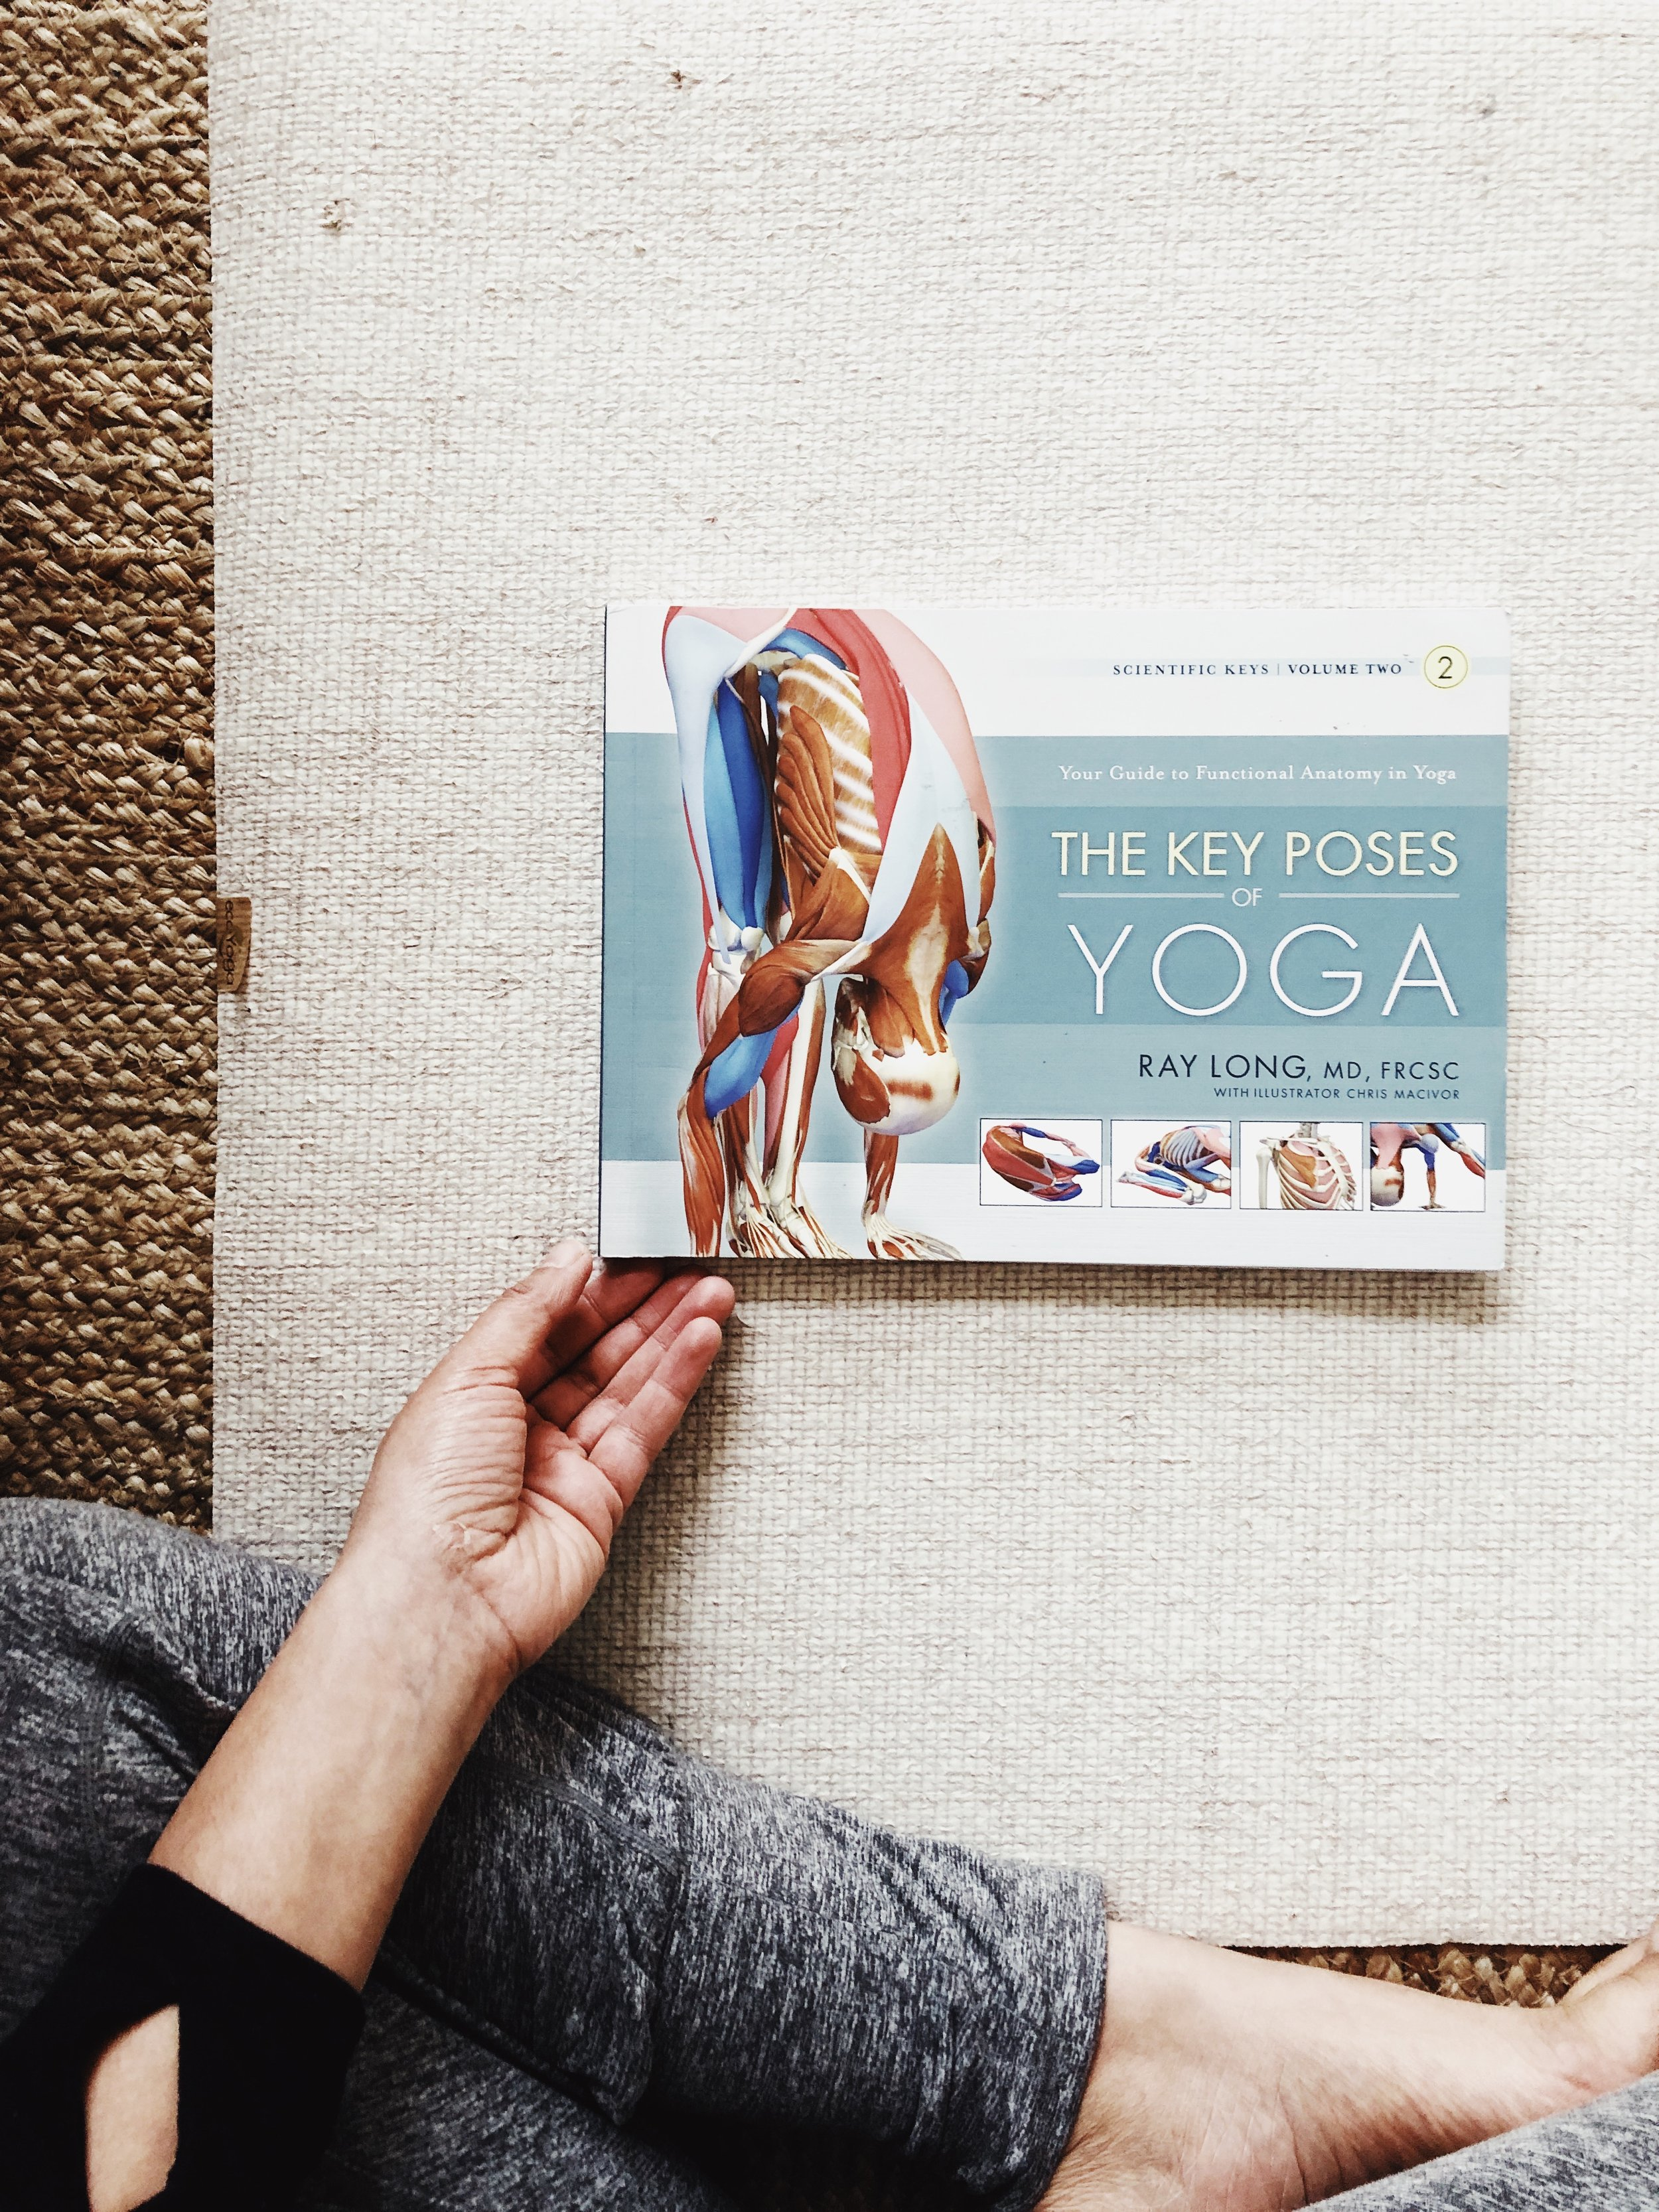 cream natural yoga mat with ray long text book on top